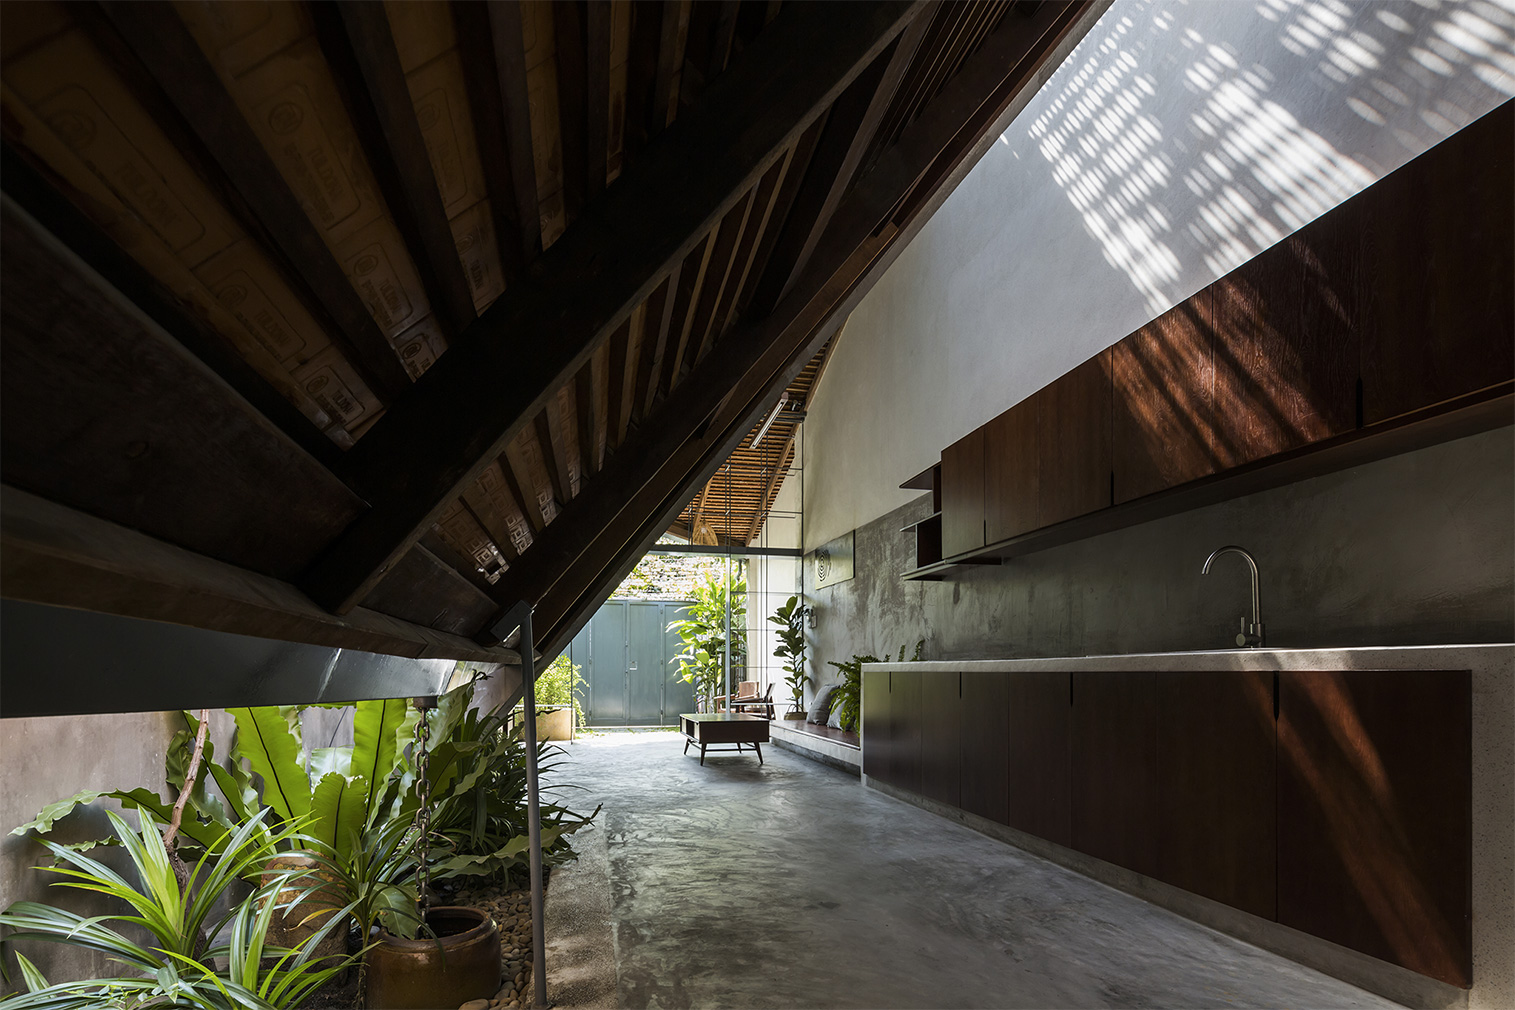 How Vietnam's architects are embracing biophilia